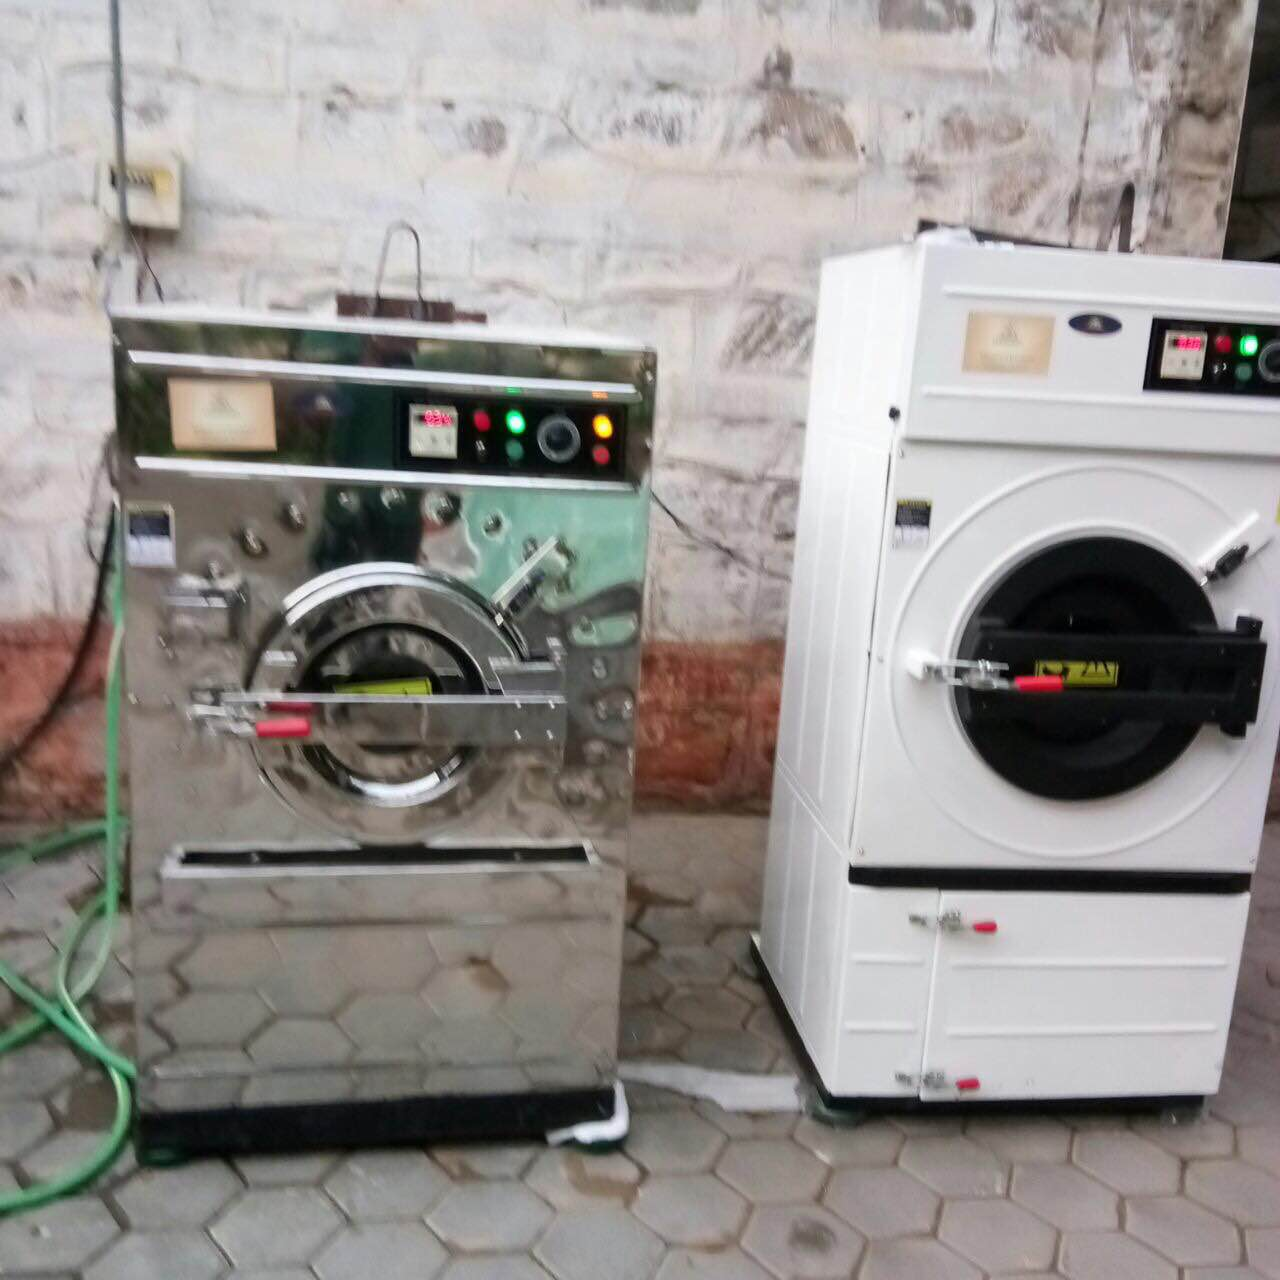 Industrial Washing Machine Manufacturer  In India. We are one of the oldest manufacturing company of Industrial Laundry, Drycleaning, Finishing Equipment. Developed Special Machine for Different Jobs.